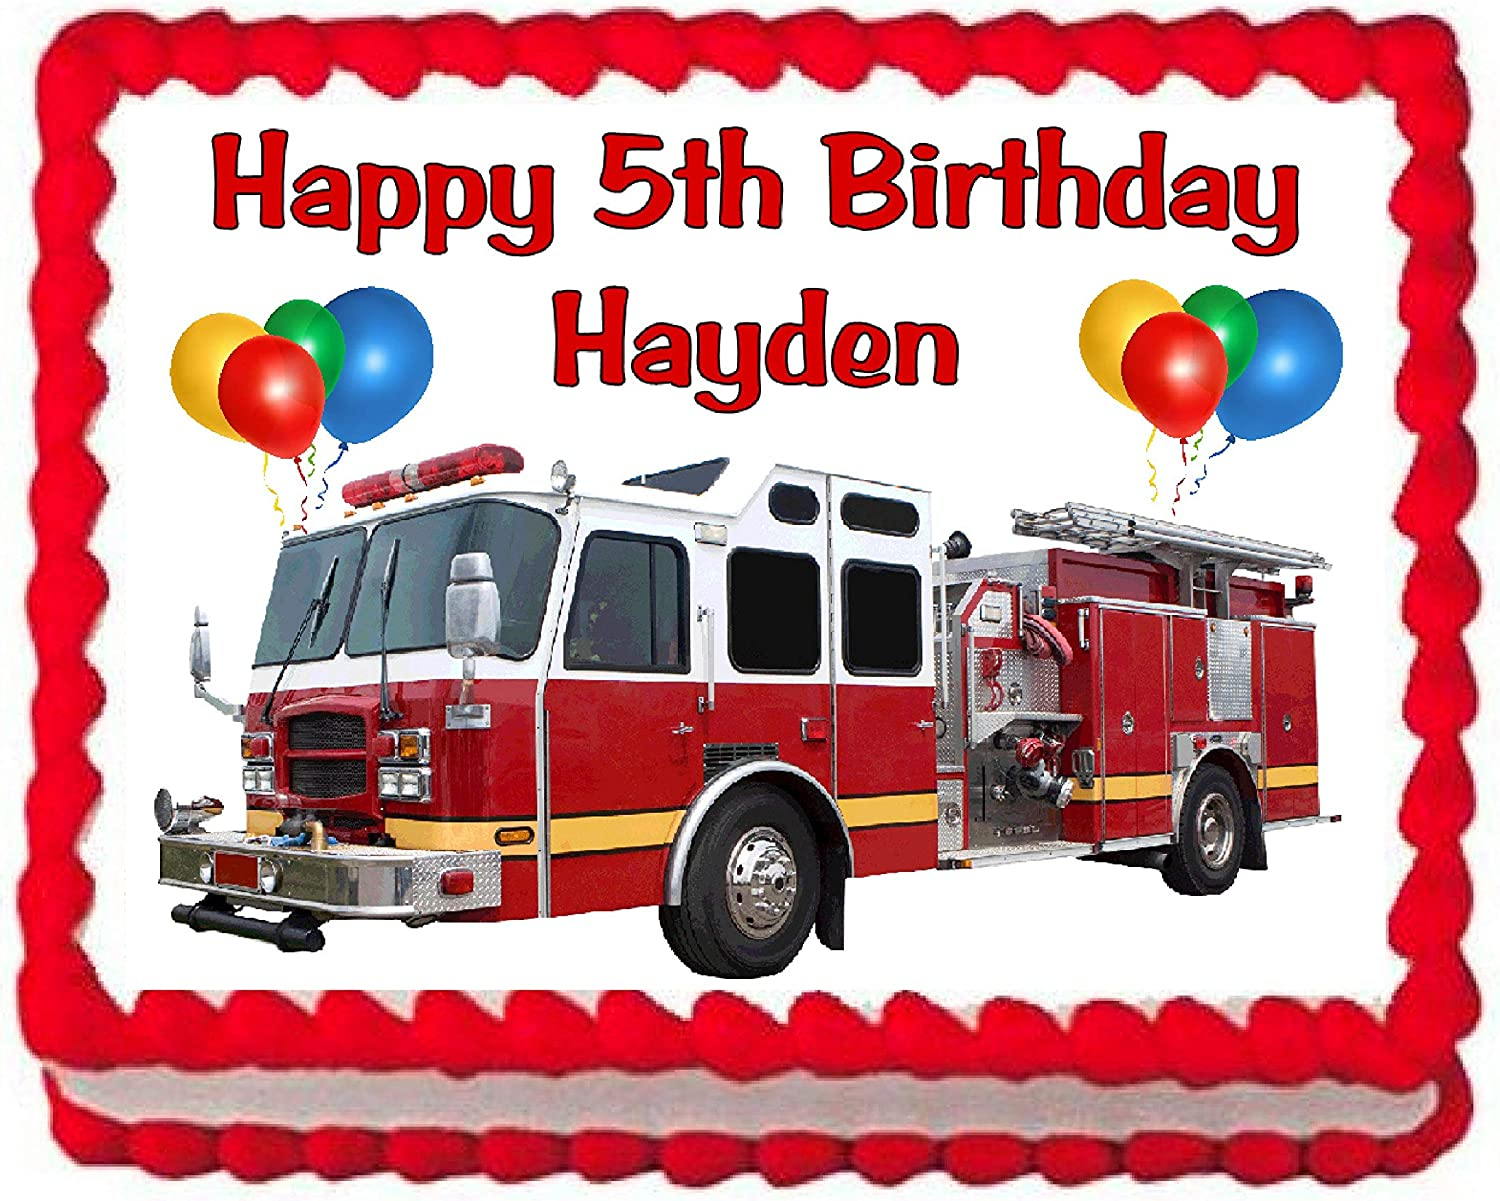 Remarkable Amazon Com Cakes For Cures Fire Truck Firetruck Edible Cake Image Funny Birthday Cards Online Alyptdamsfinfo